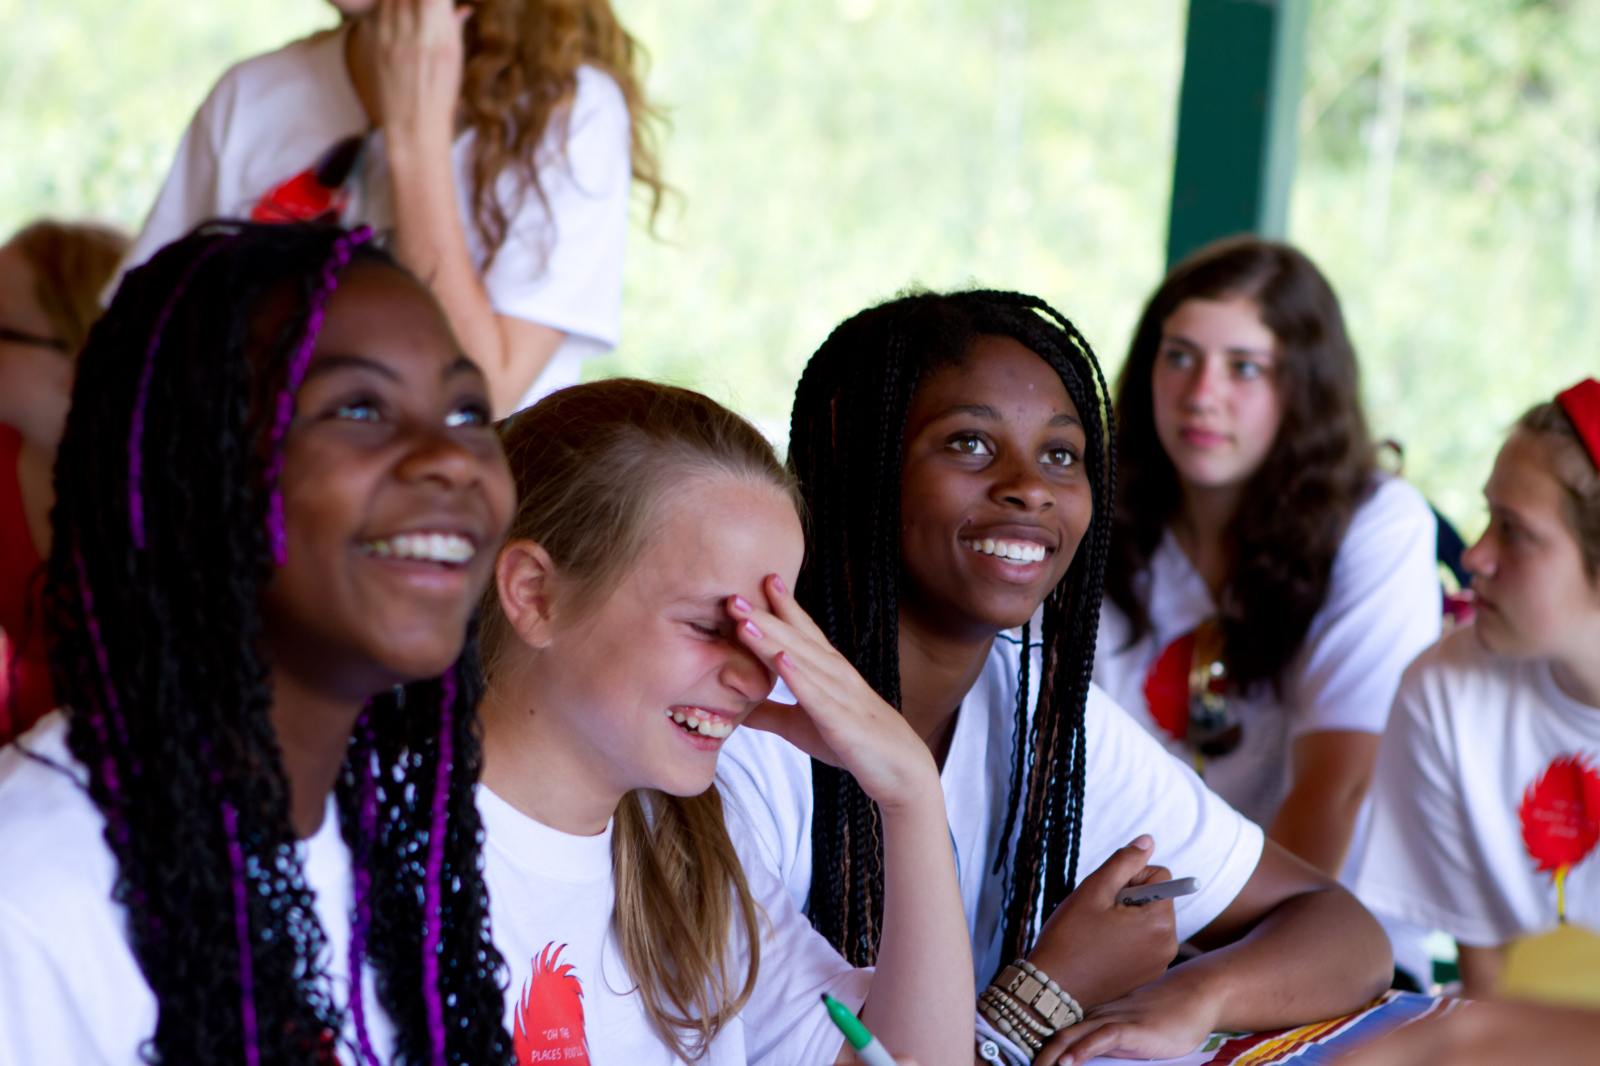 Young Women smile at camp. This year marks 150 years since the Young Ladies' Retrenchment Association, later renamed the Young Women Mutual Improvement Association, was organized by Brigham Young in the Lion House. This was the forerunner for today's Young Women program.